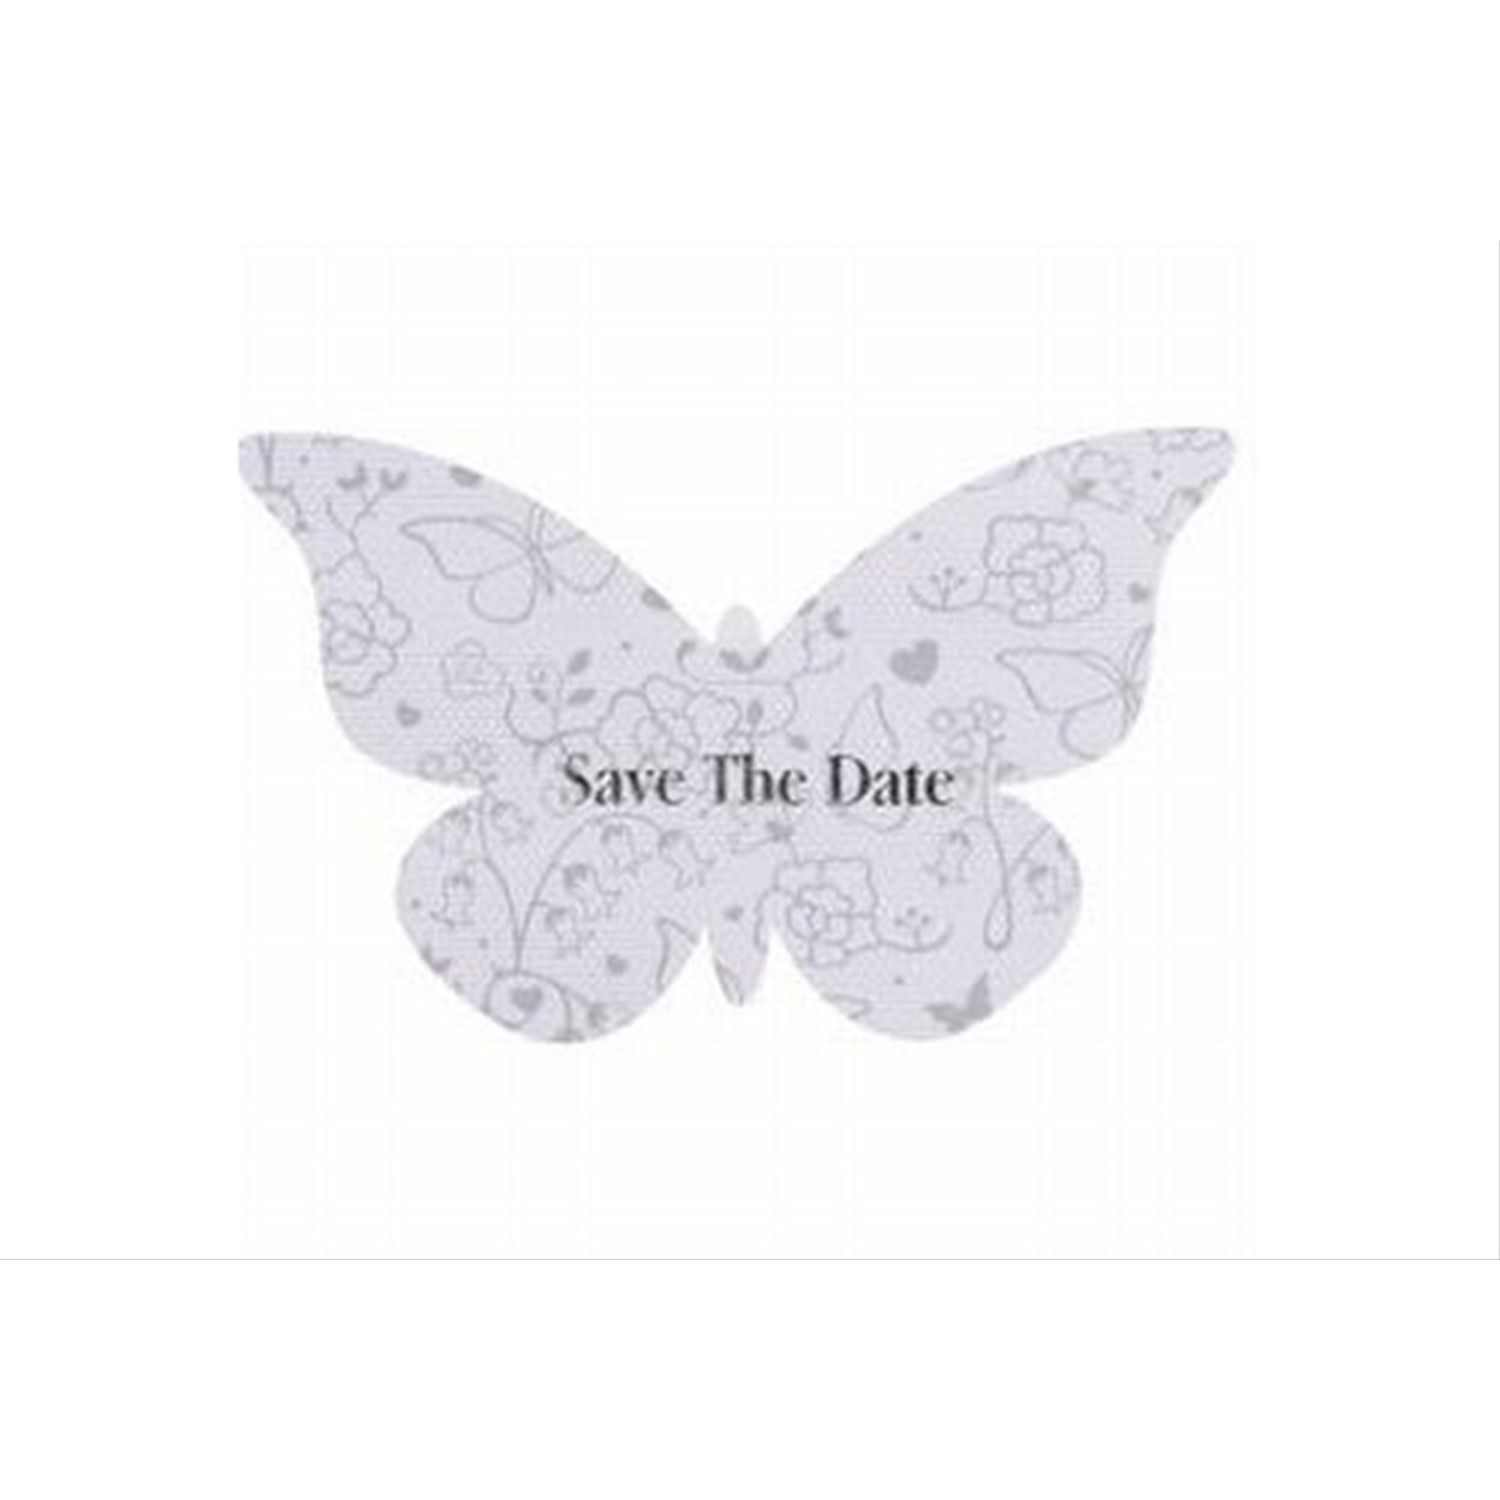 10 Pack Save The Date Butterfly Cards